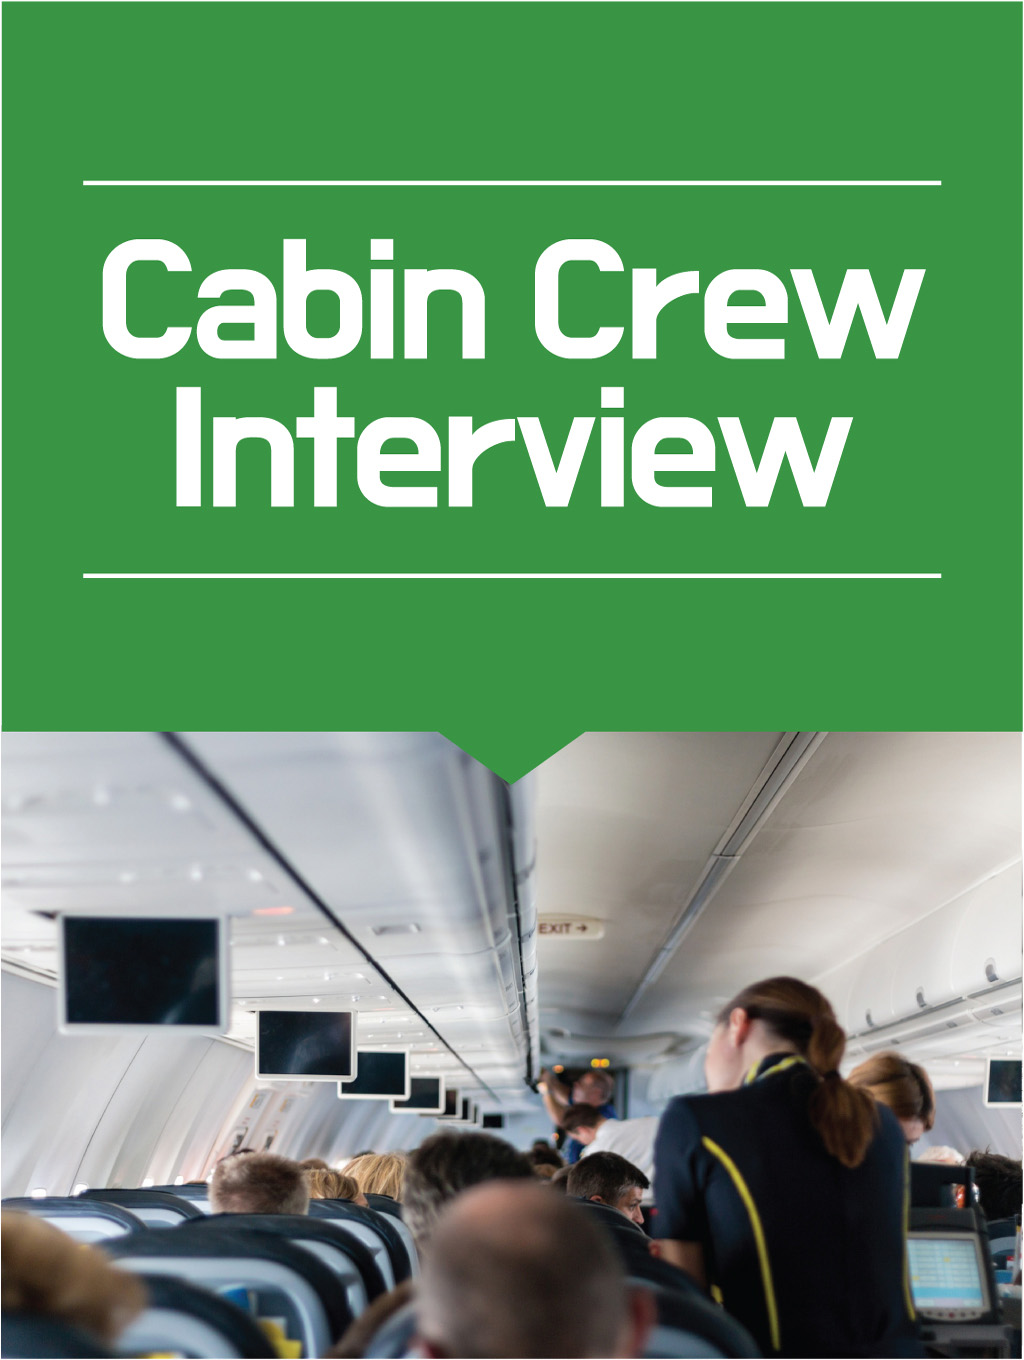 Cabin Crew Interview (승무원 면접)